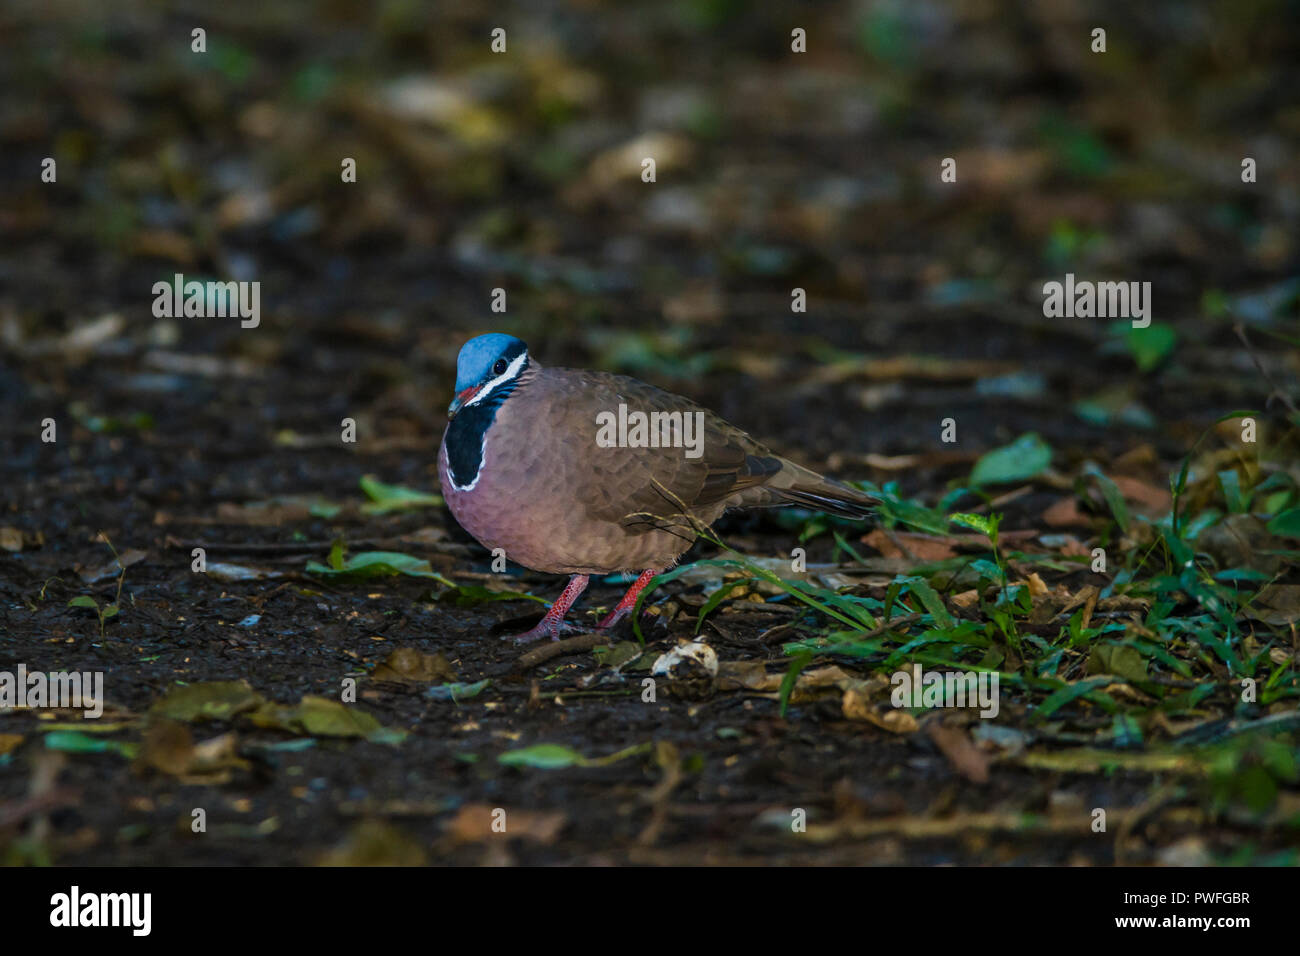 The endemic, highly endangered Blue-headed Quail-Dove (Starnoenas cyanocephala) can be seen near Bermejas very early in the morning. Zapata, Cuba Stock Photo